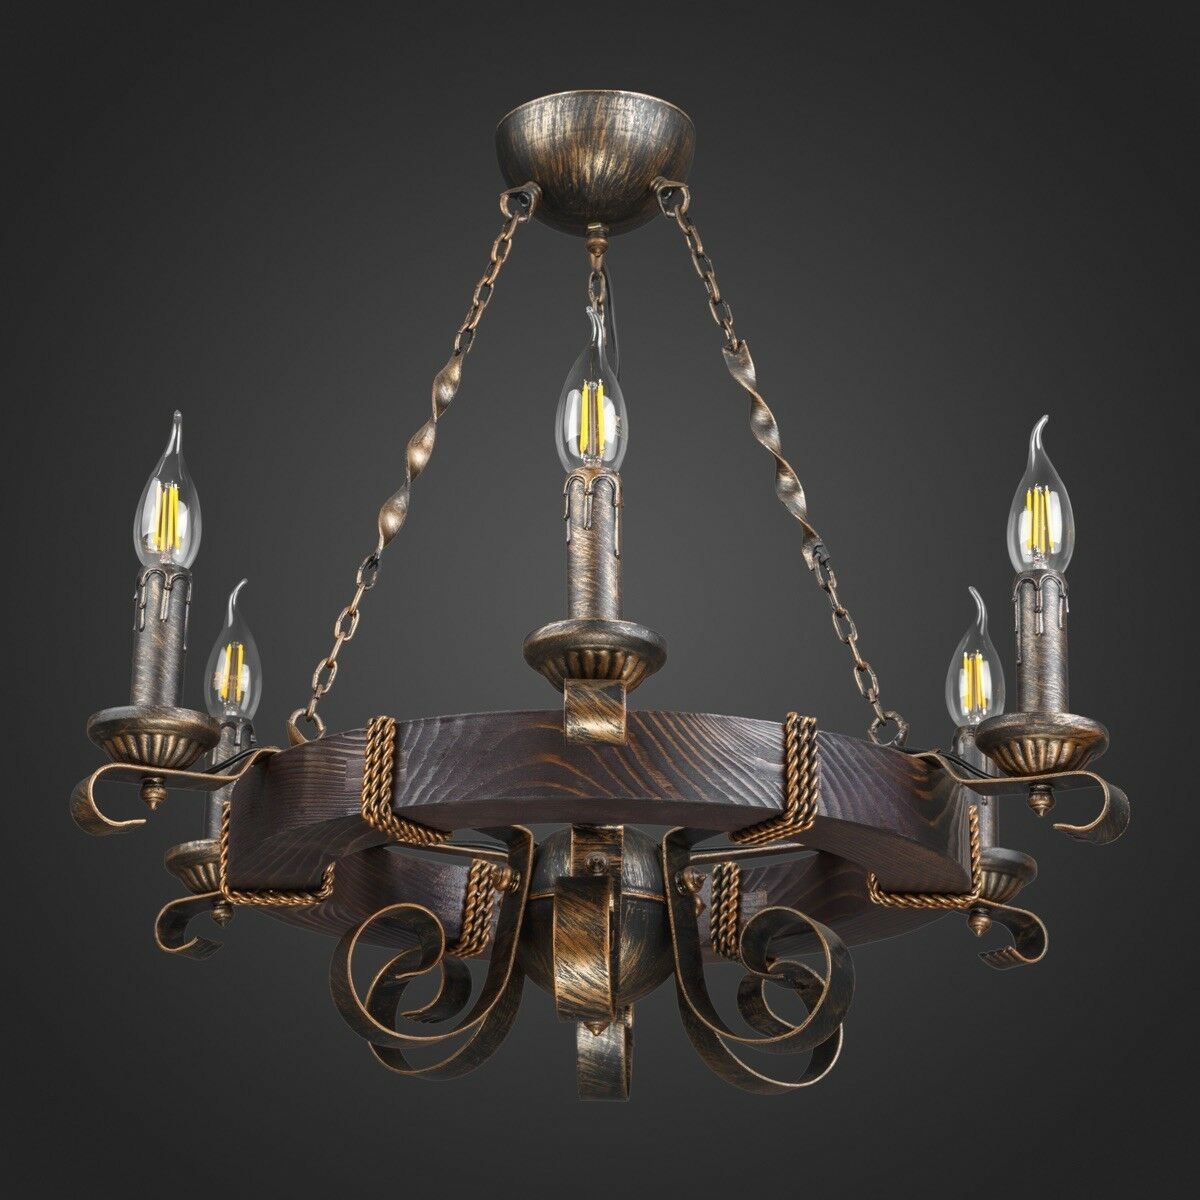 Decorative retro chandelier hand-made wood and metal